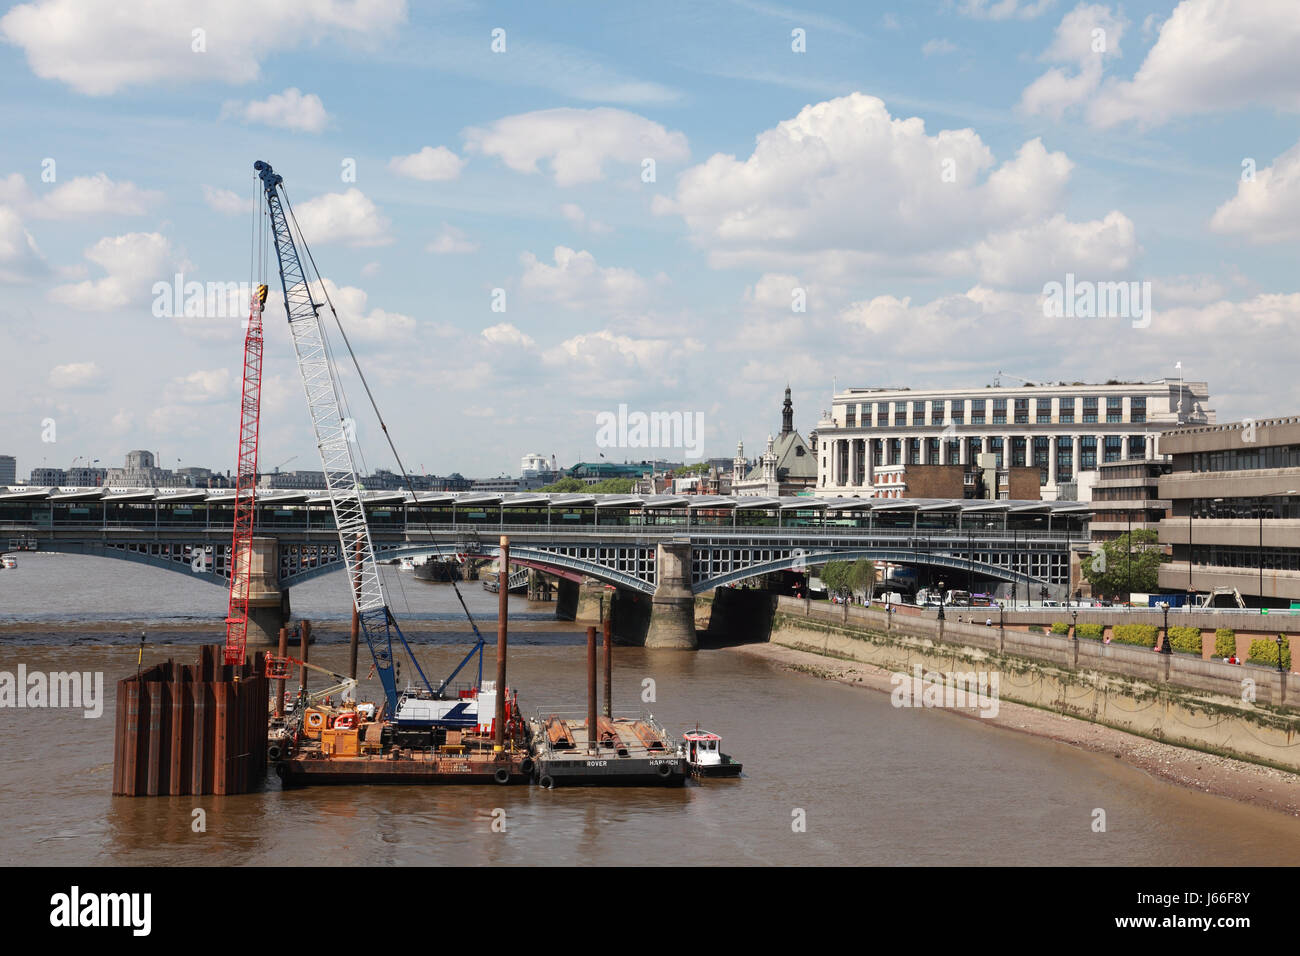 Early work on the Thames Tideway Tunnel project to build a super sewer minaly under the bed of the river Thames - Stock Image